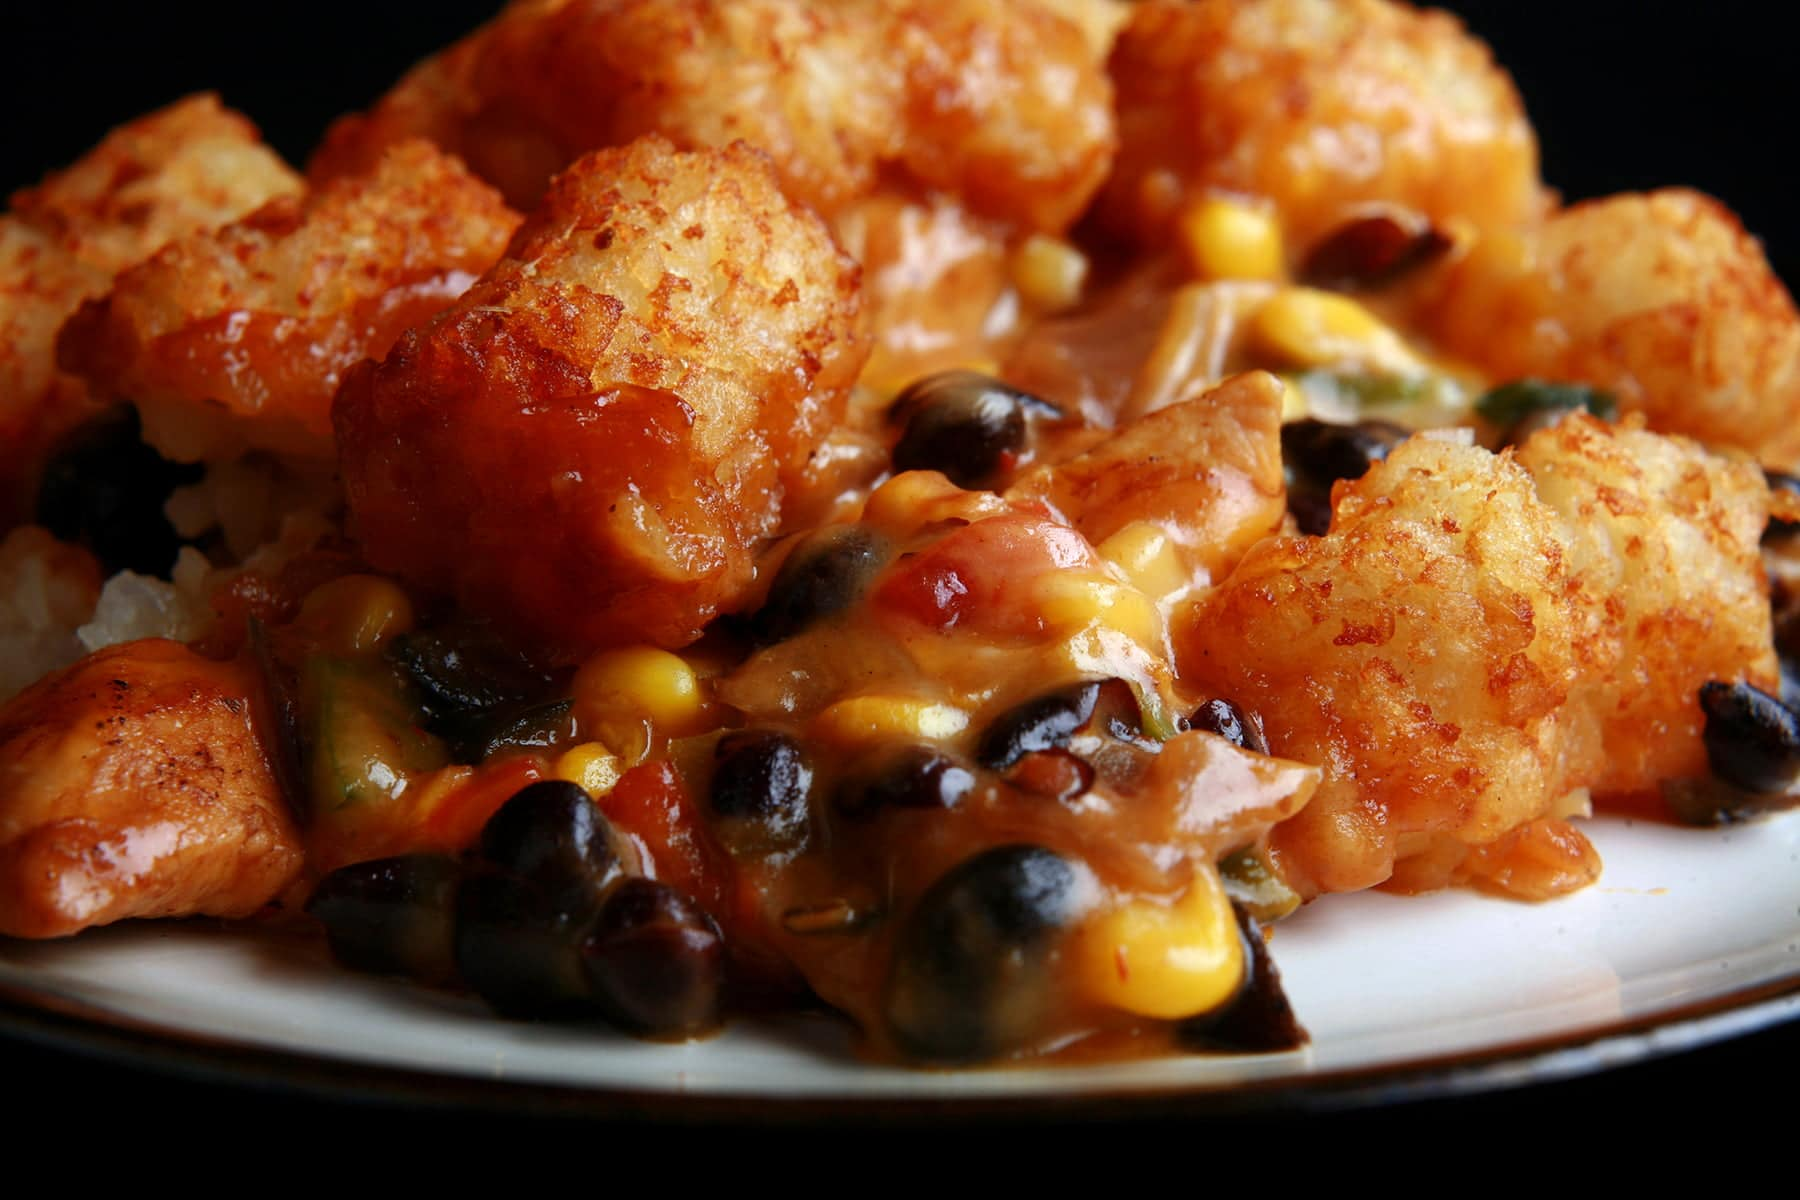 A close up view of a serving of southwest hot dish. Chicken, black beans, salsa, cheese sauce are visible, with crispy tater tots on top.